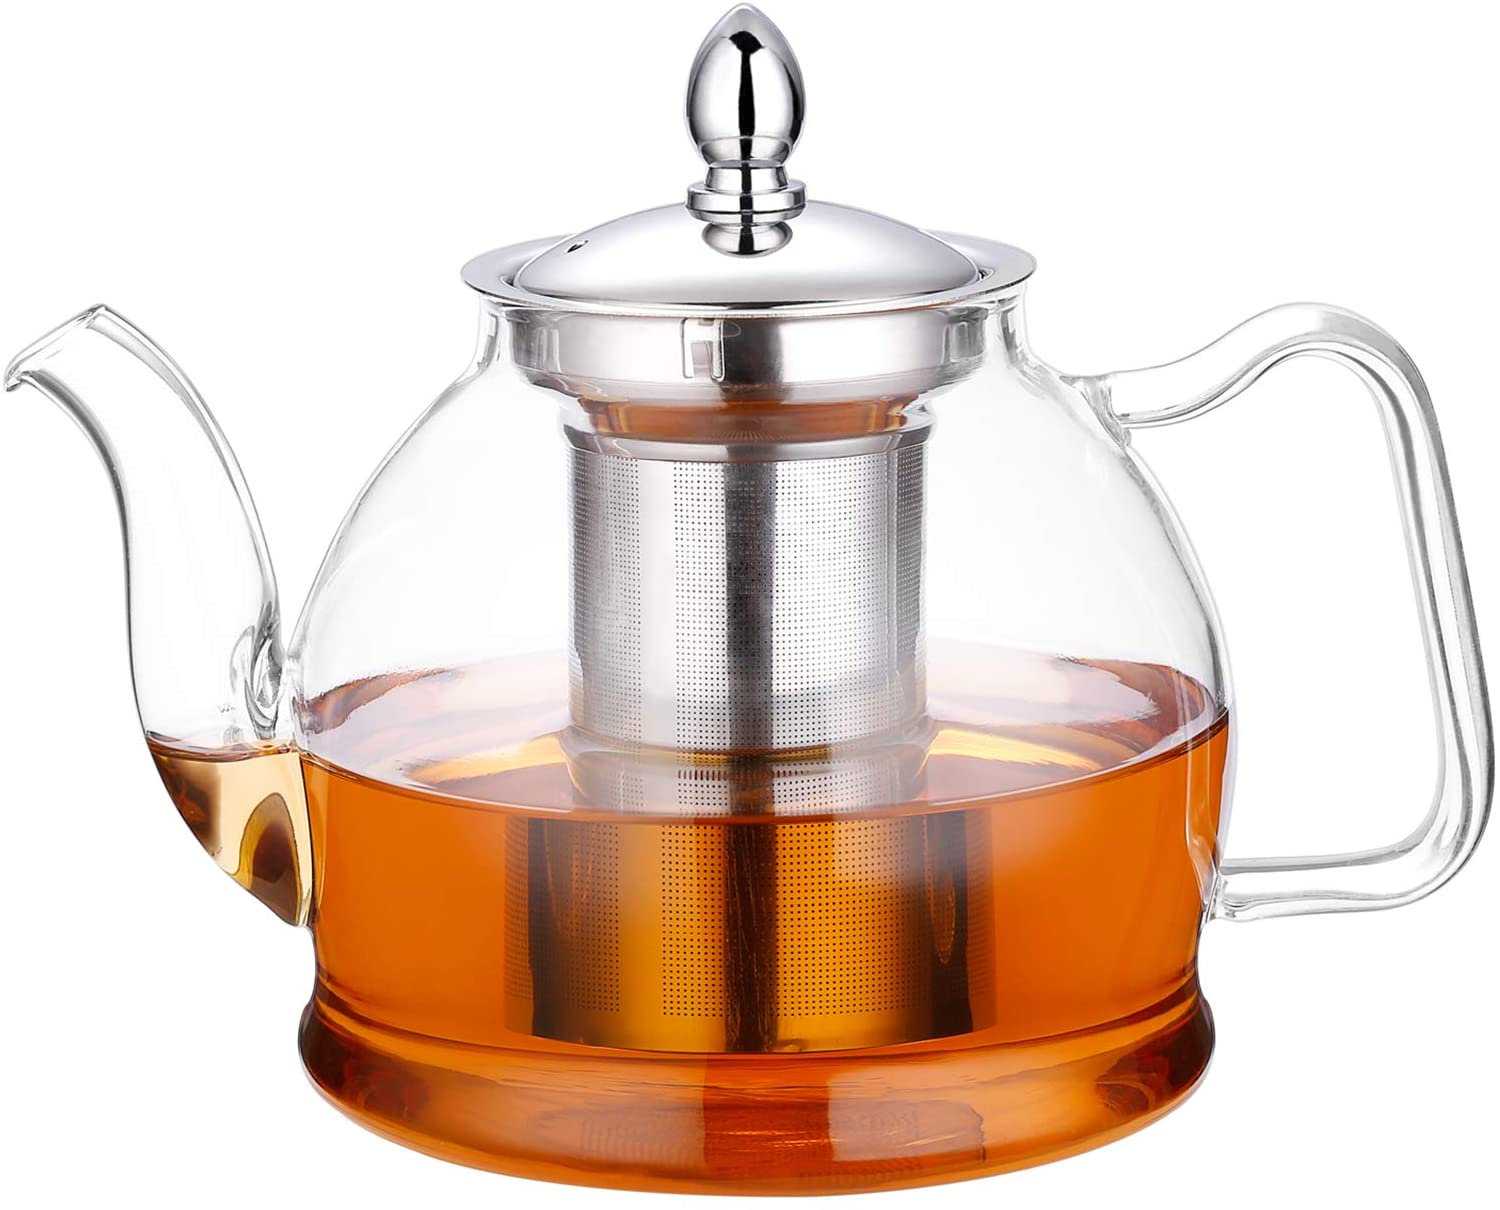 hiware teapot, gifts for mom